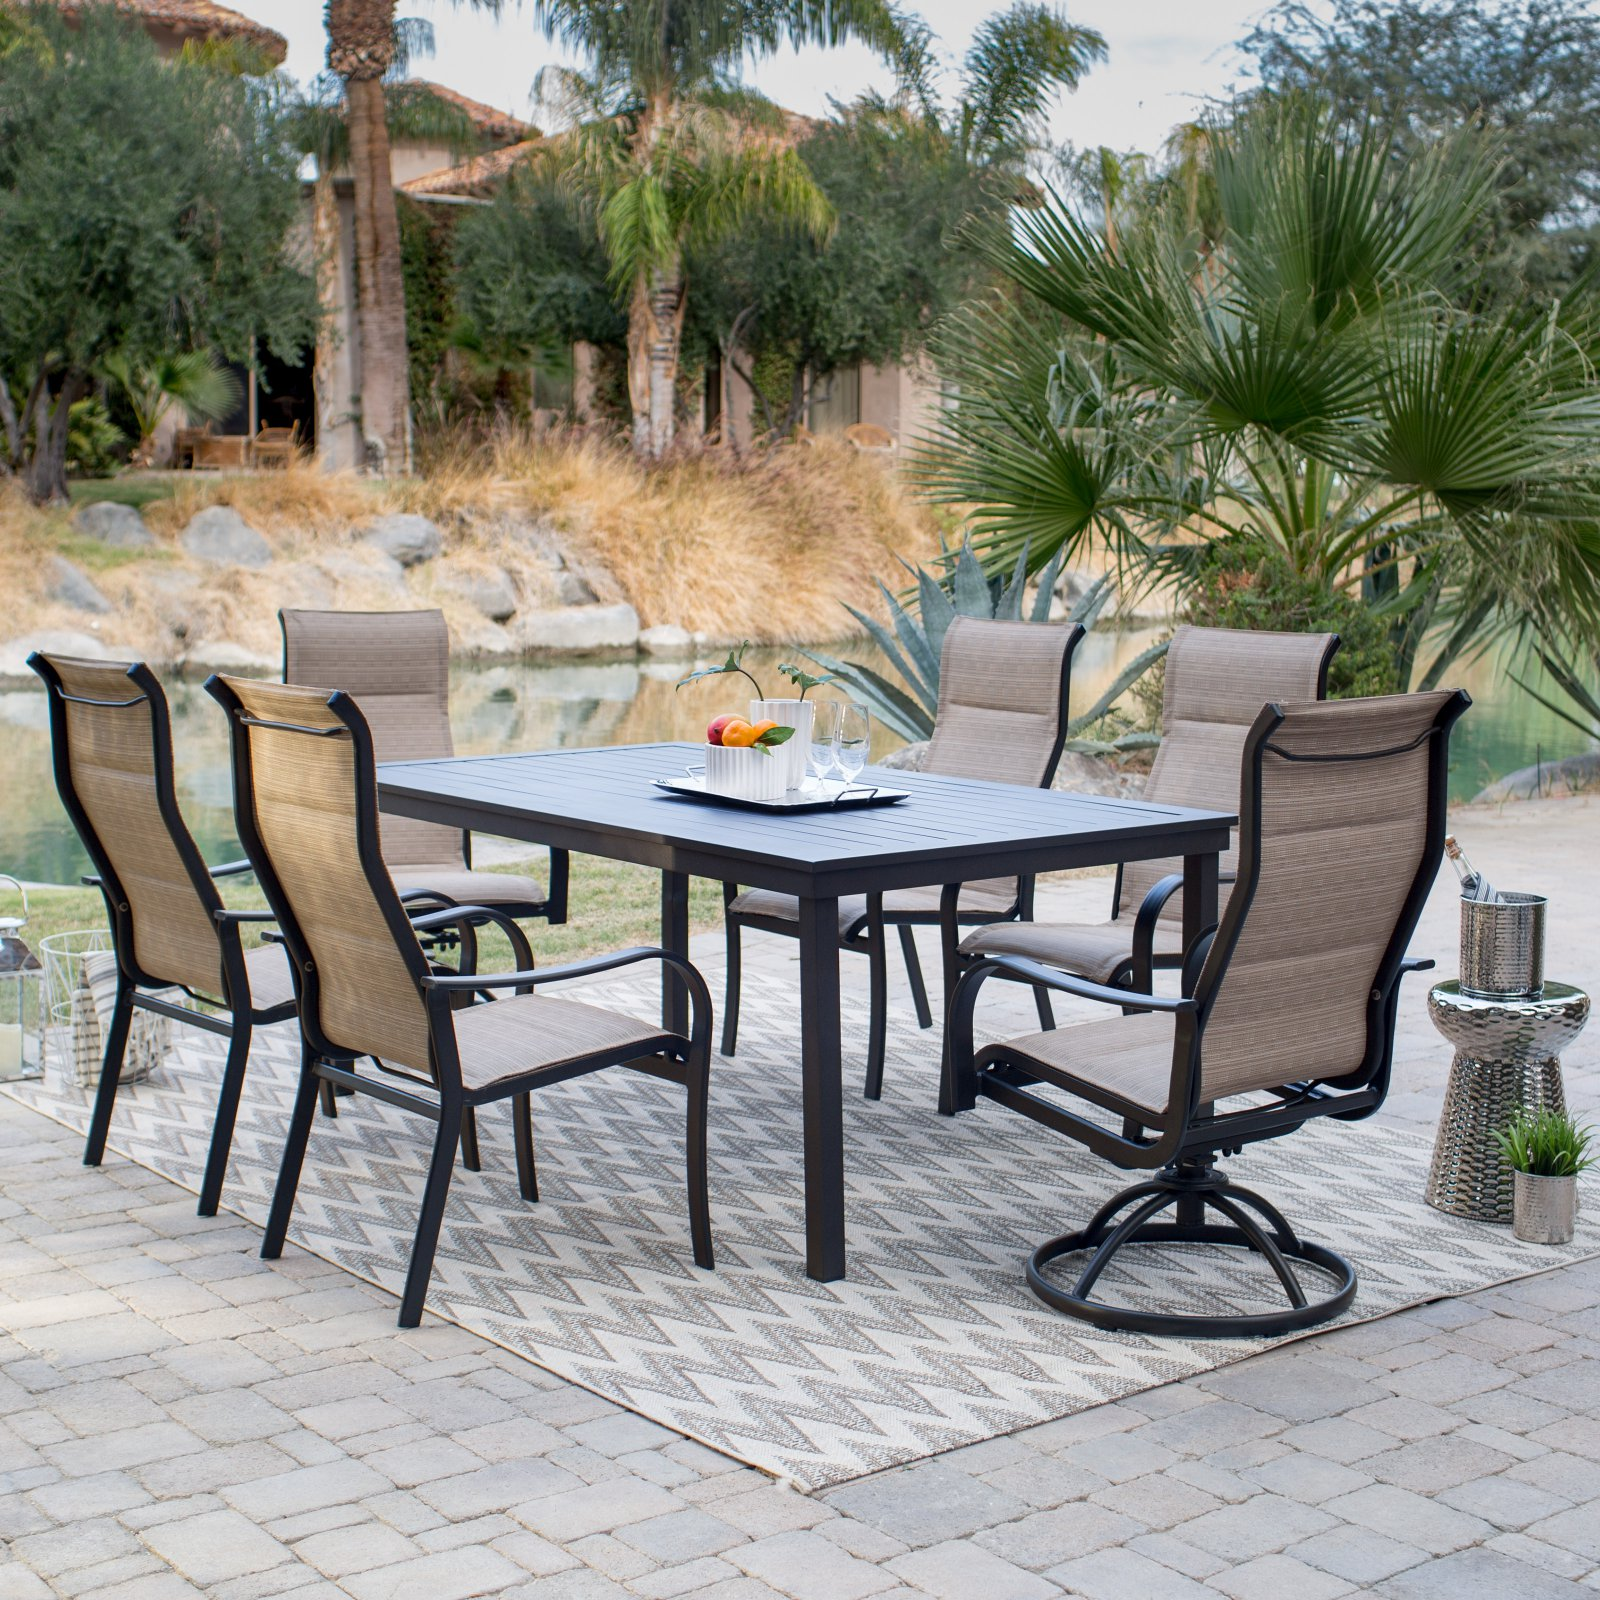 Coral Coast Wimberley Deluxe Padded Sling Aluminum 7 Piece Patio Dining Set